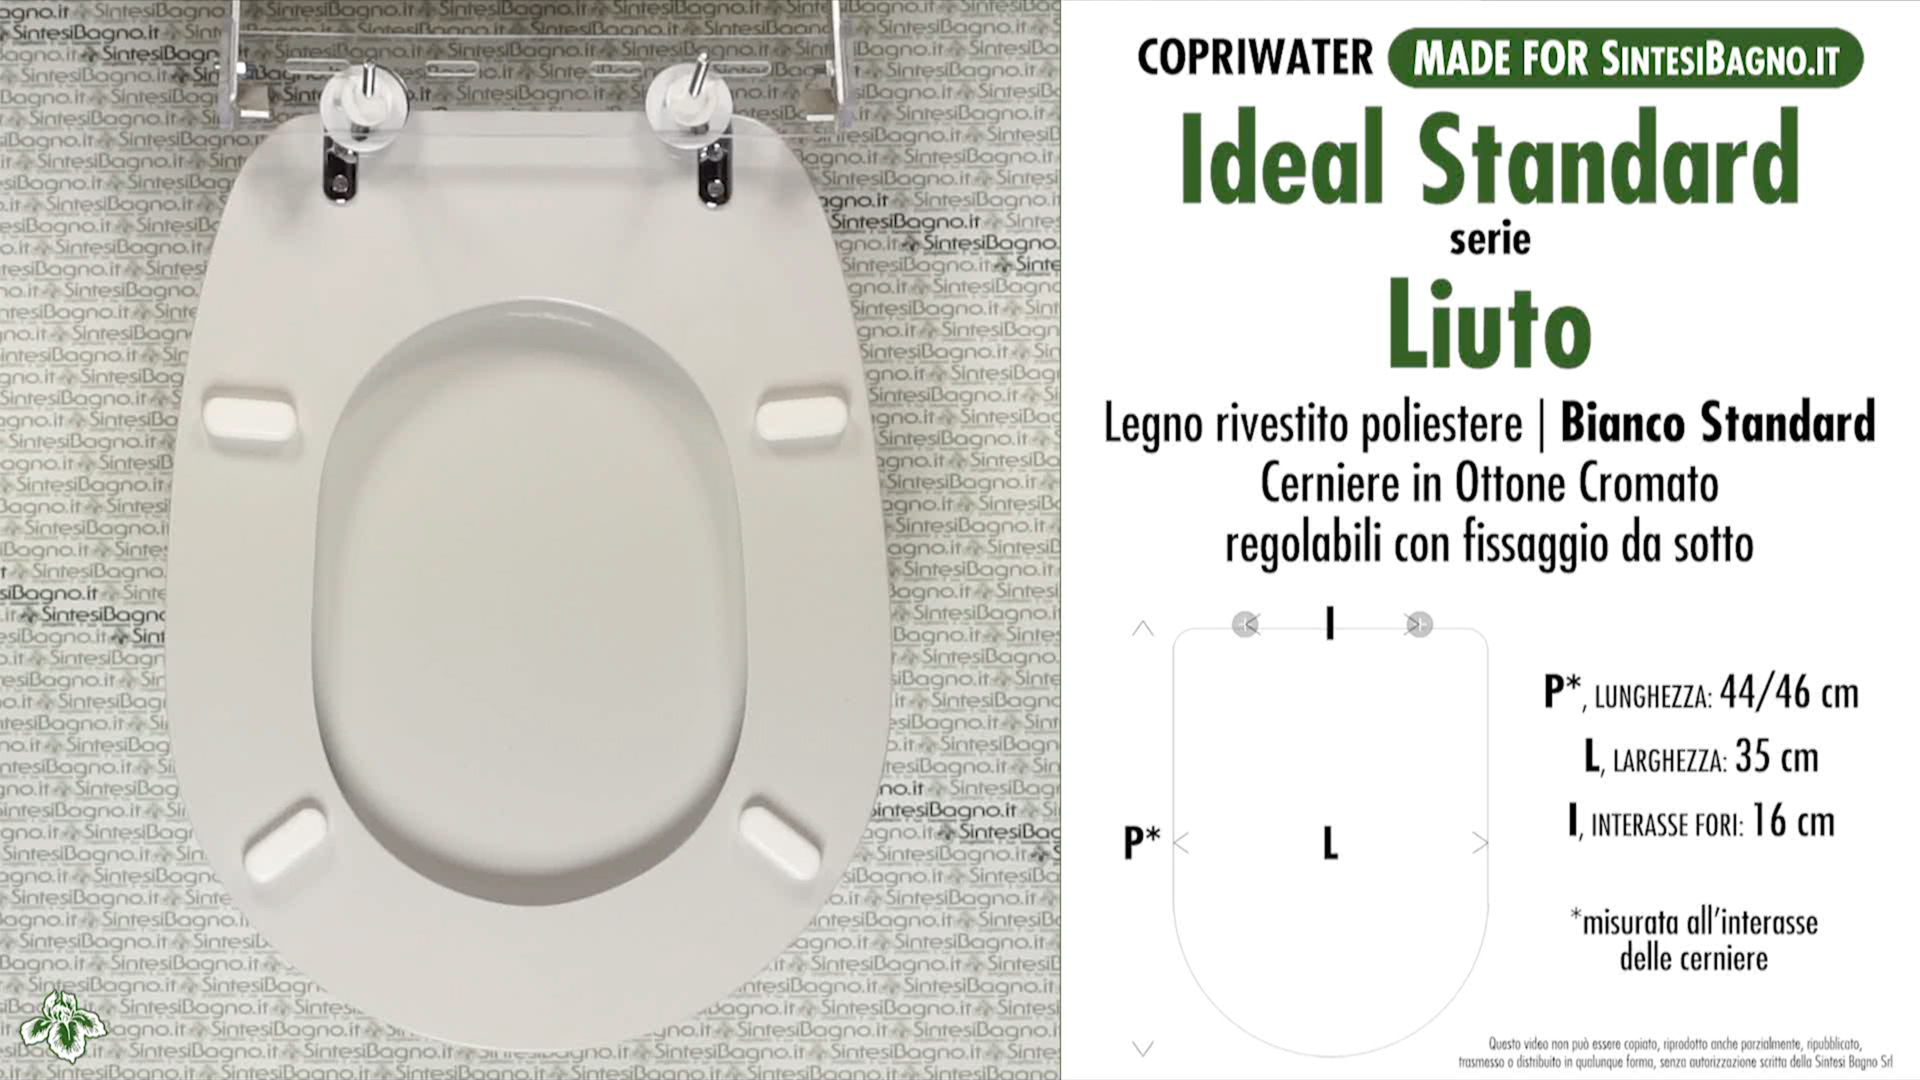 Details about Toilet Seat SintesiBagno MADE for Ideal Standard WC LIUTO  serie. OVALIBSED0130BS